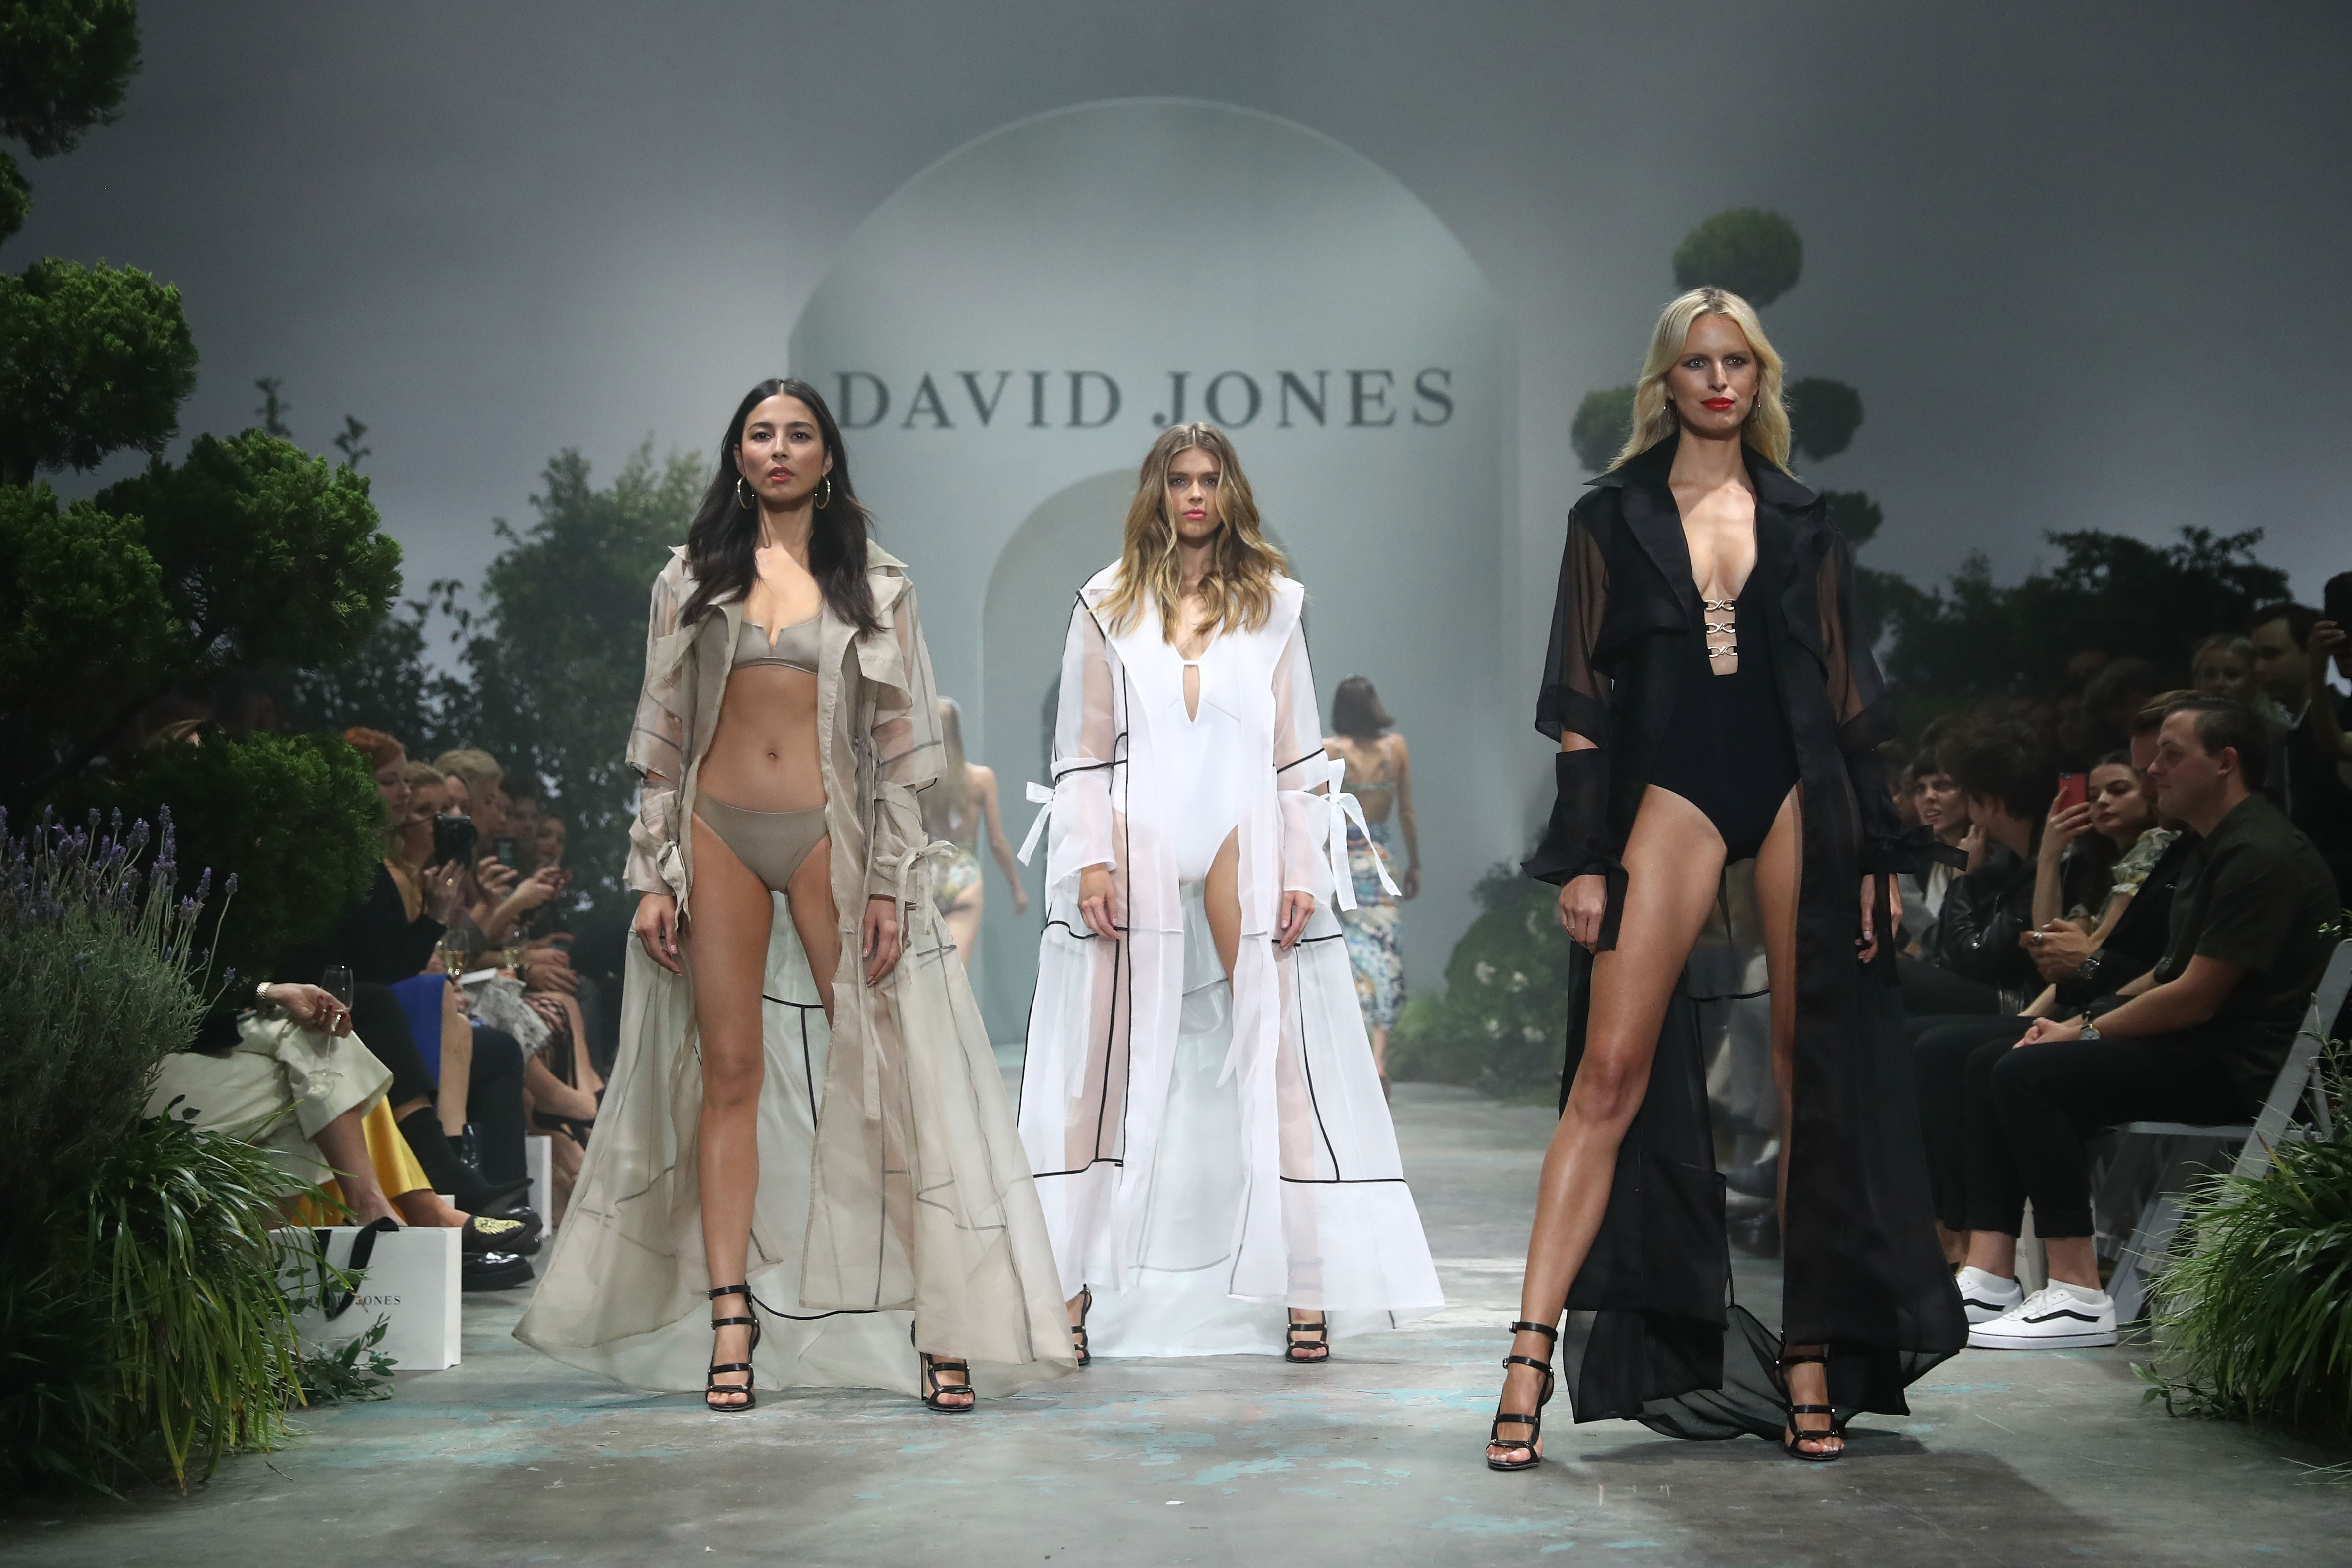 SYDNEY, AUSTRALIA - AUGUST 08:  Jessica Gomes wears Jessica Gomes for Jets, Victoria Lee and Karolina Kurkova showcase designs by Jets during the David Jones Spring Summer 18 Collections Launch at Fox Studios on August 8, 2018 in Sydney, Australia.  (Photo by Mark Metcalfe/Getty Images for David Jones) *** Local Caption *** Jessica Gomes; Victoria Lee; Karolina Kurkova